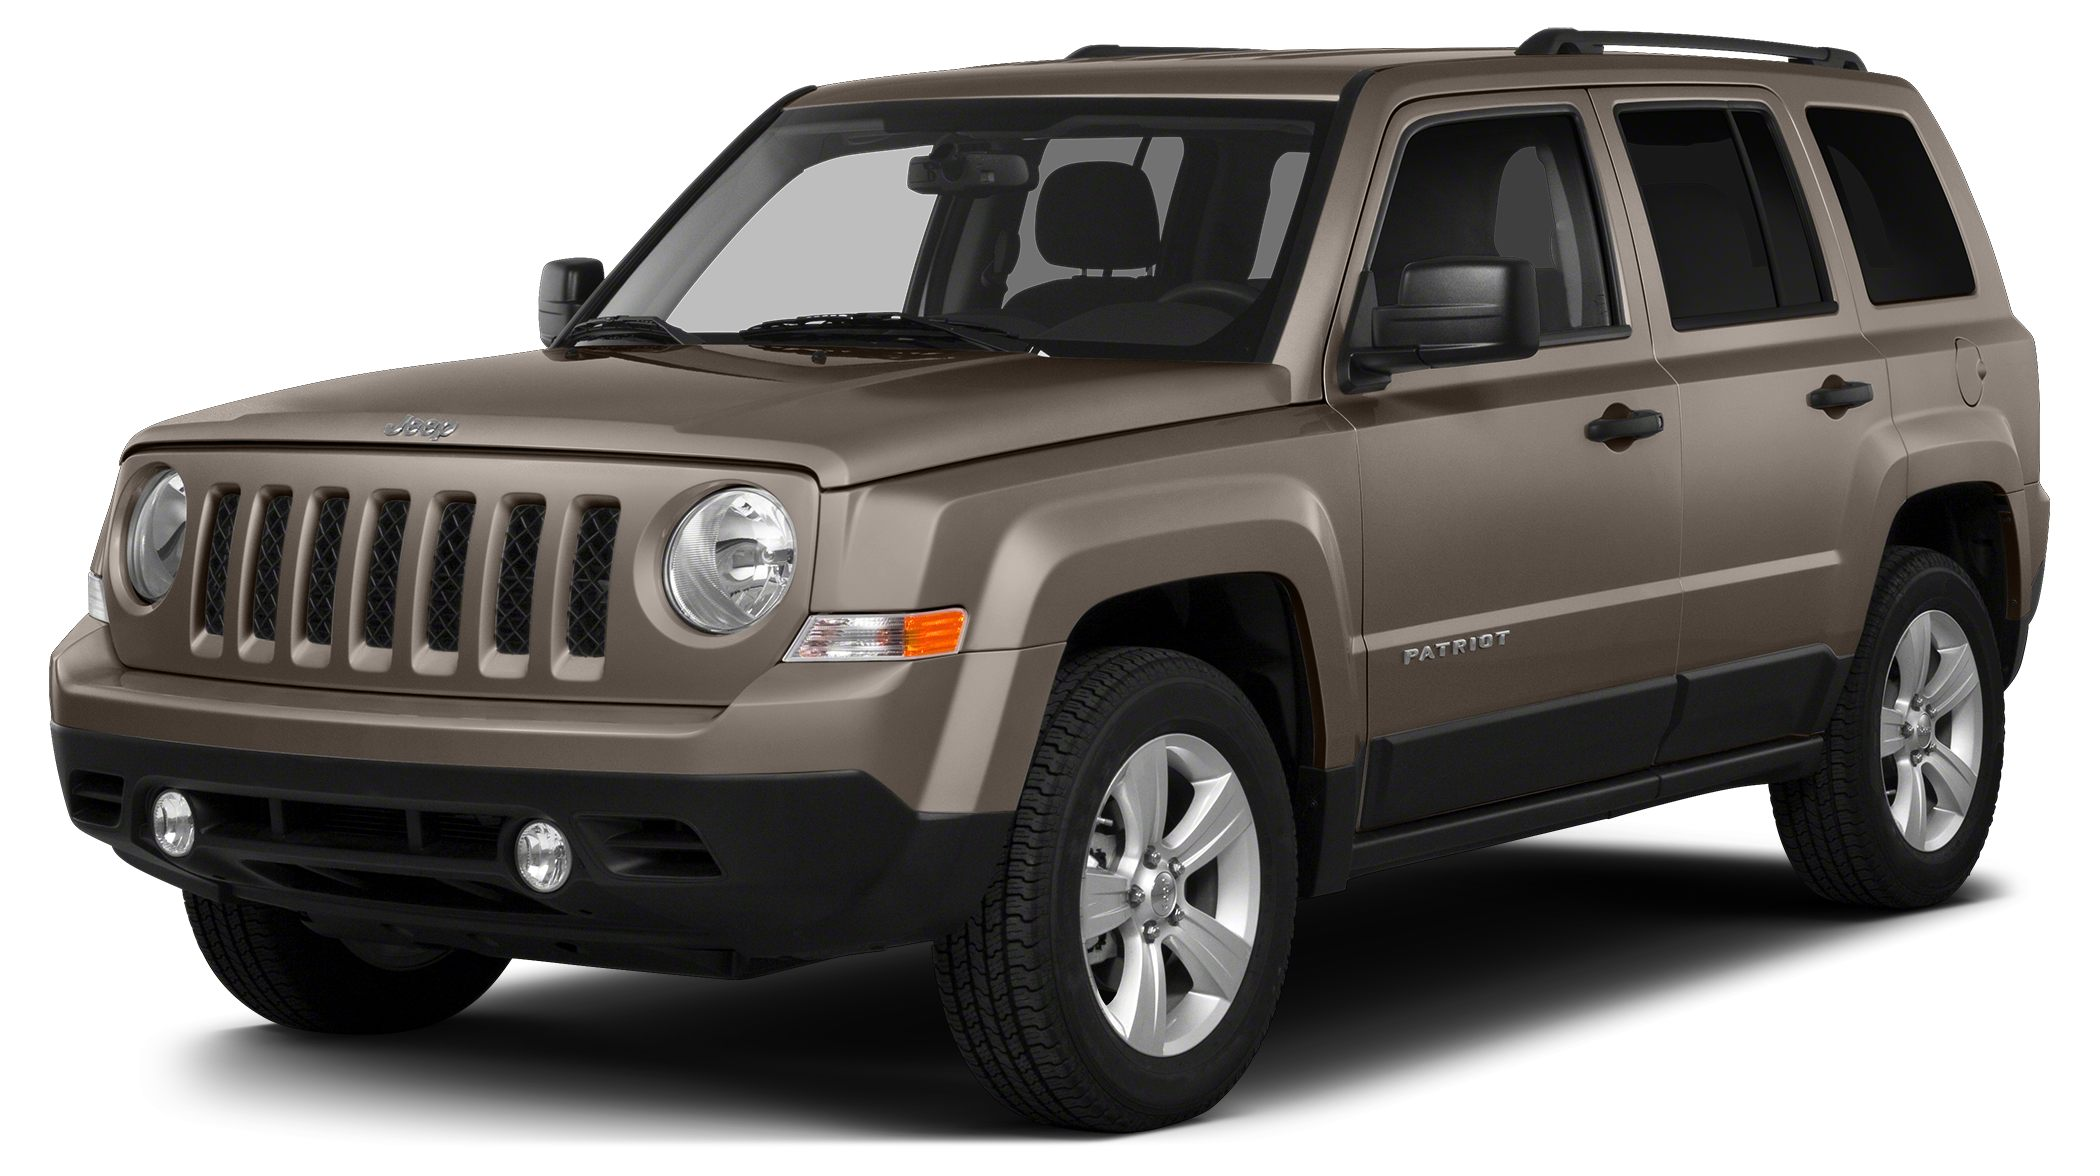 2014 Jeep Patriot Latitude Latitude trim PRICE DROP FROM 19000 PRICED TO MOVE 500 below NADA